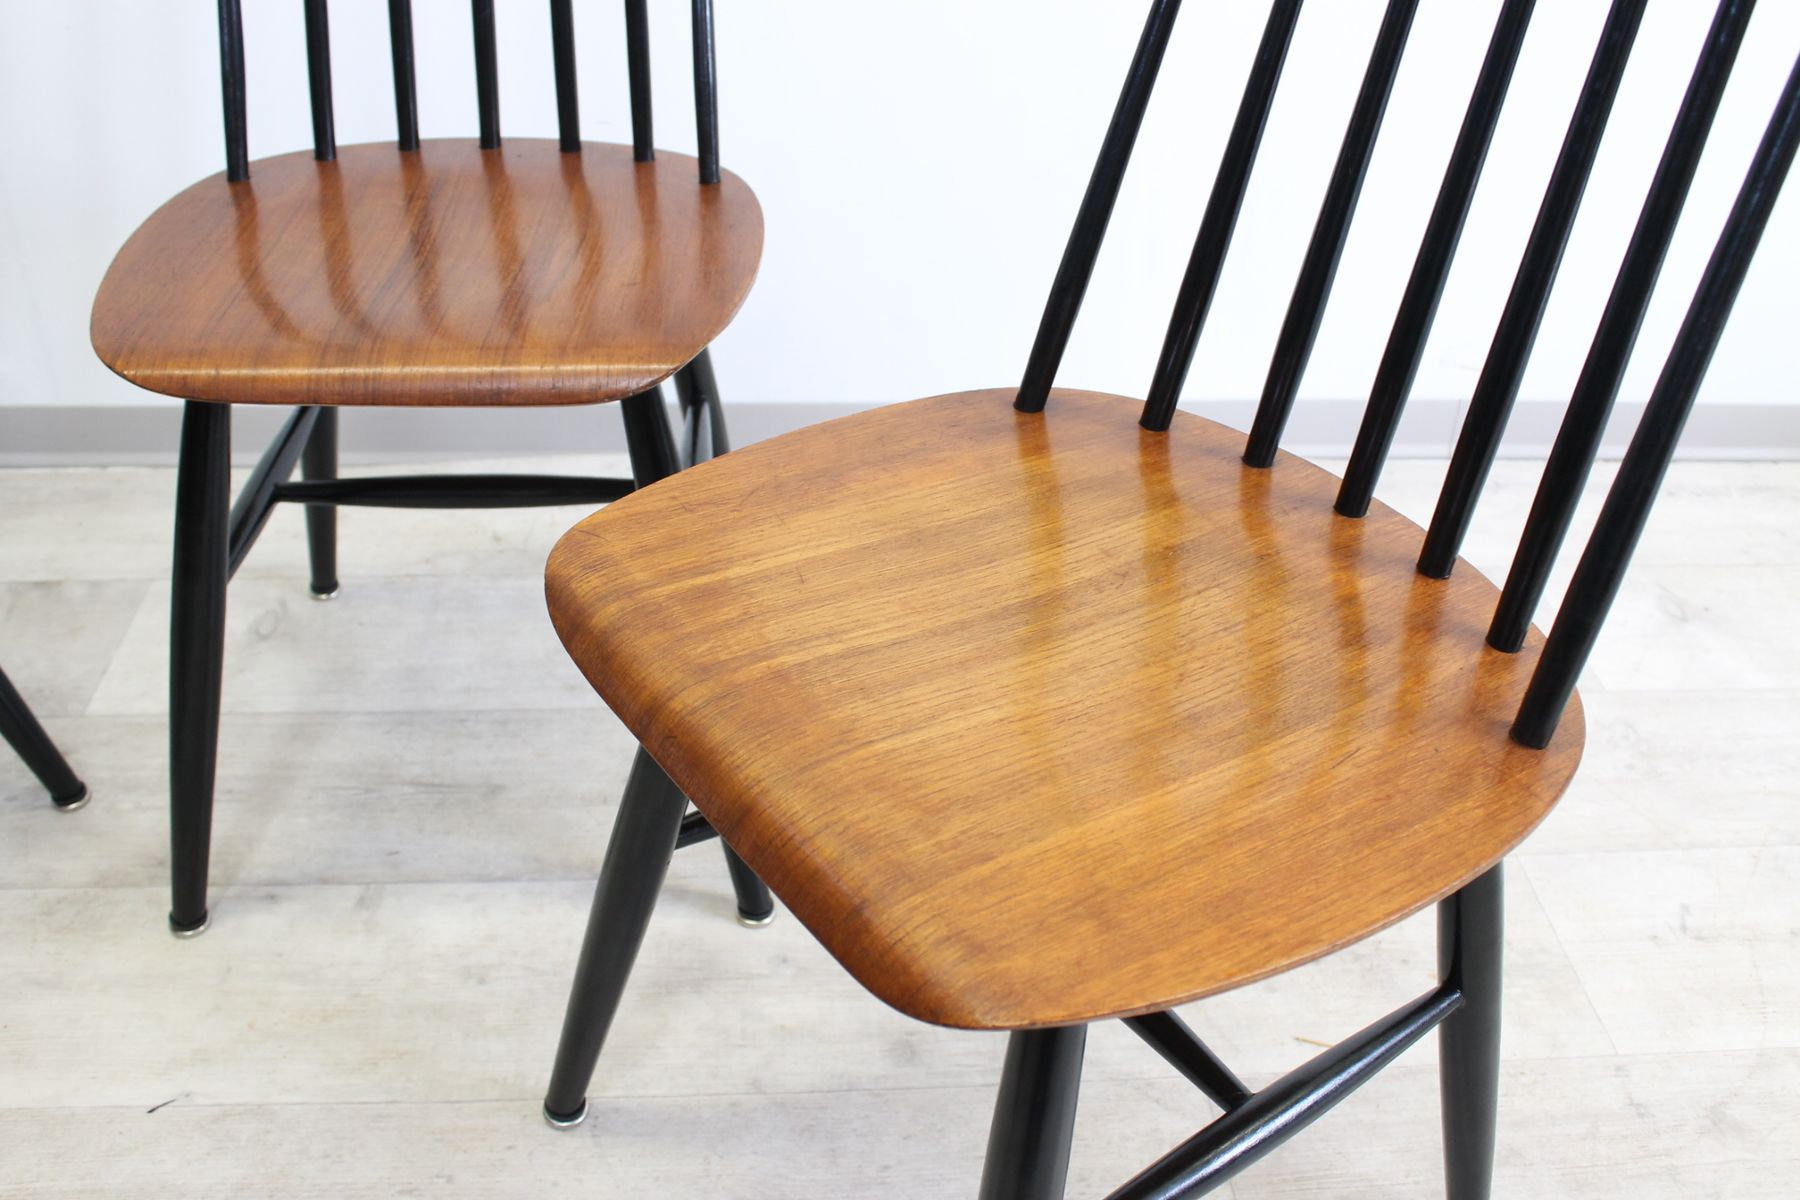 mid century wooden dining chairs by ilmari tapiovaara set of 4 for sale at pamono. Black Bedroom Furniture Sets. Home Design Ideas